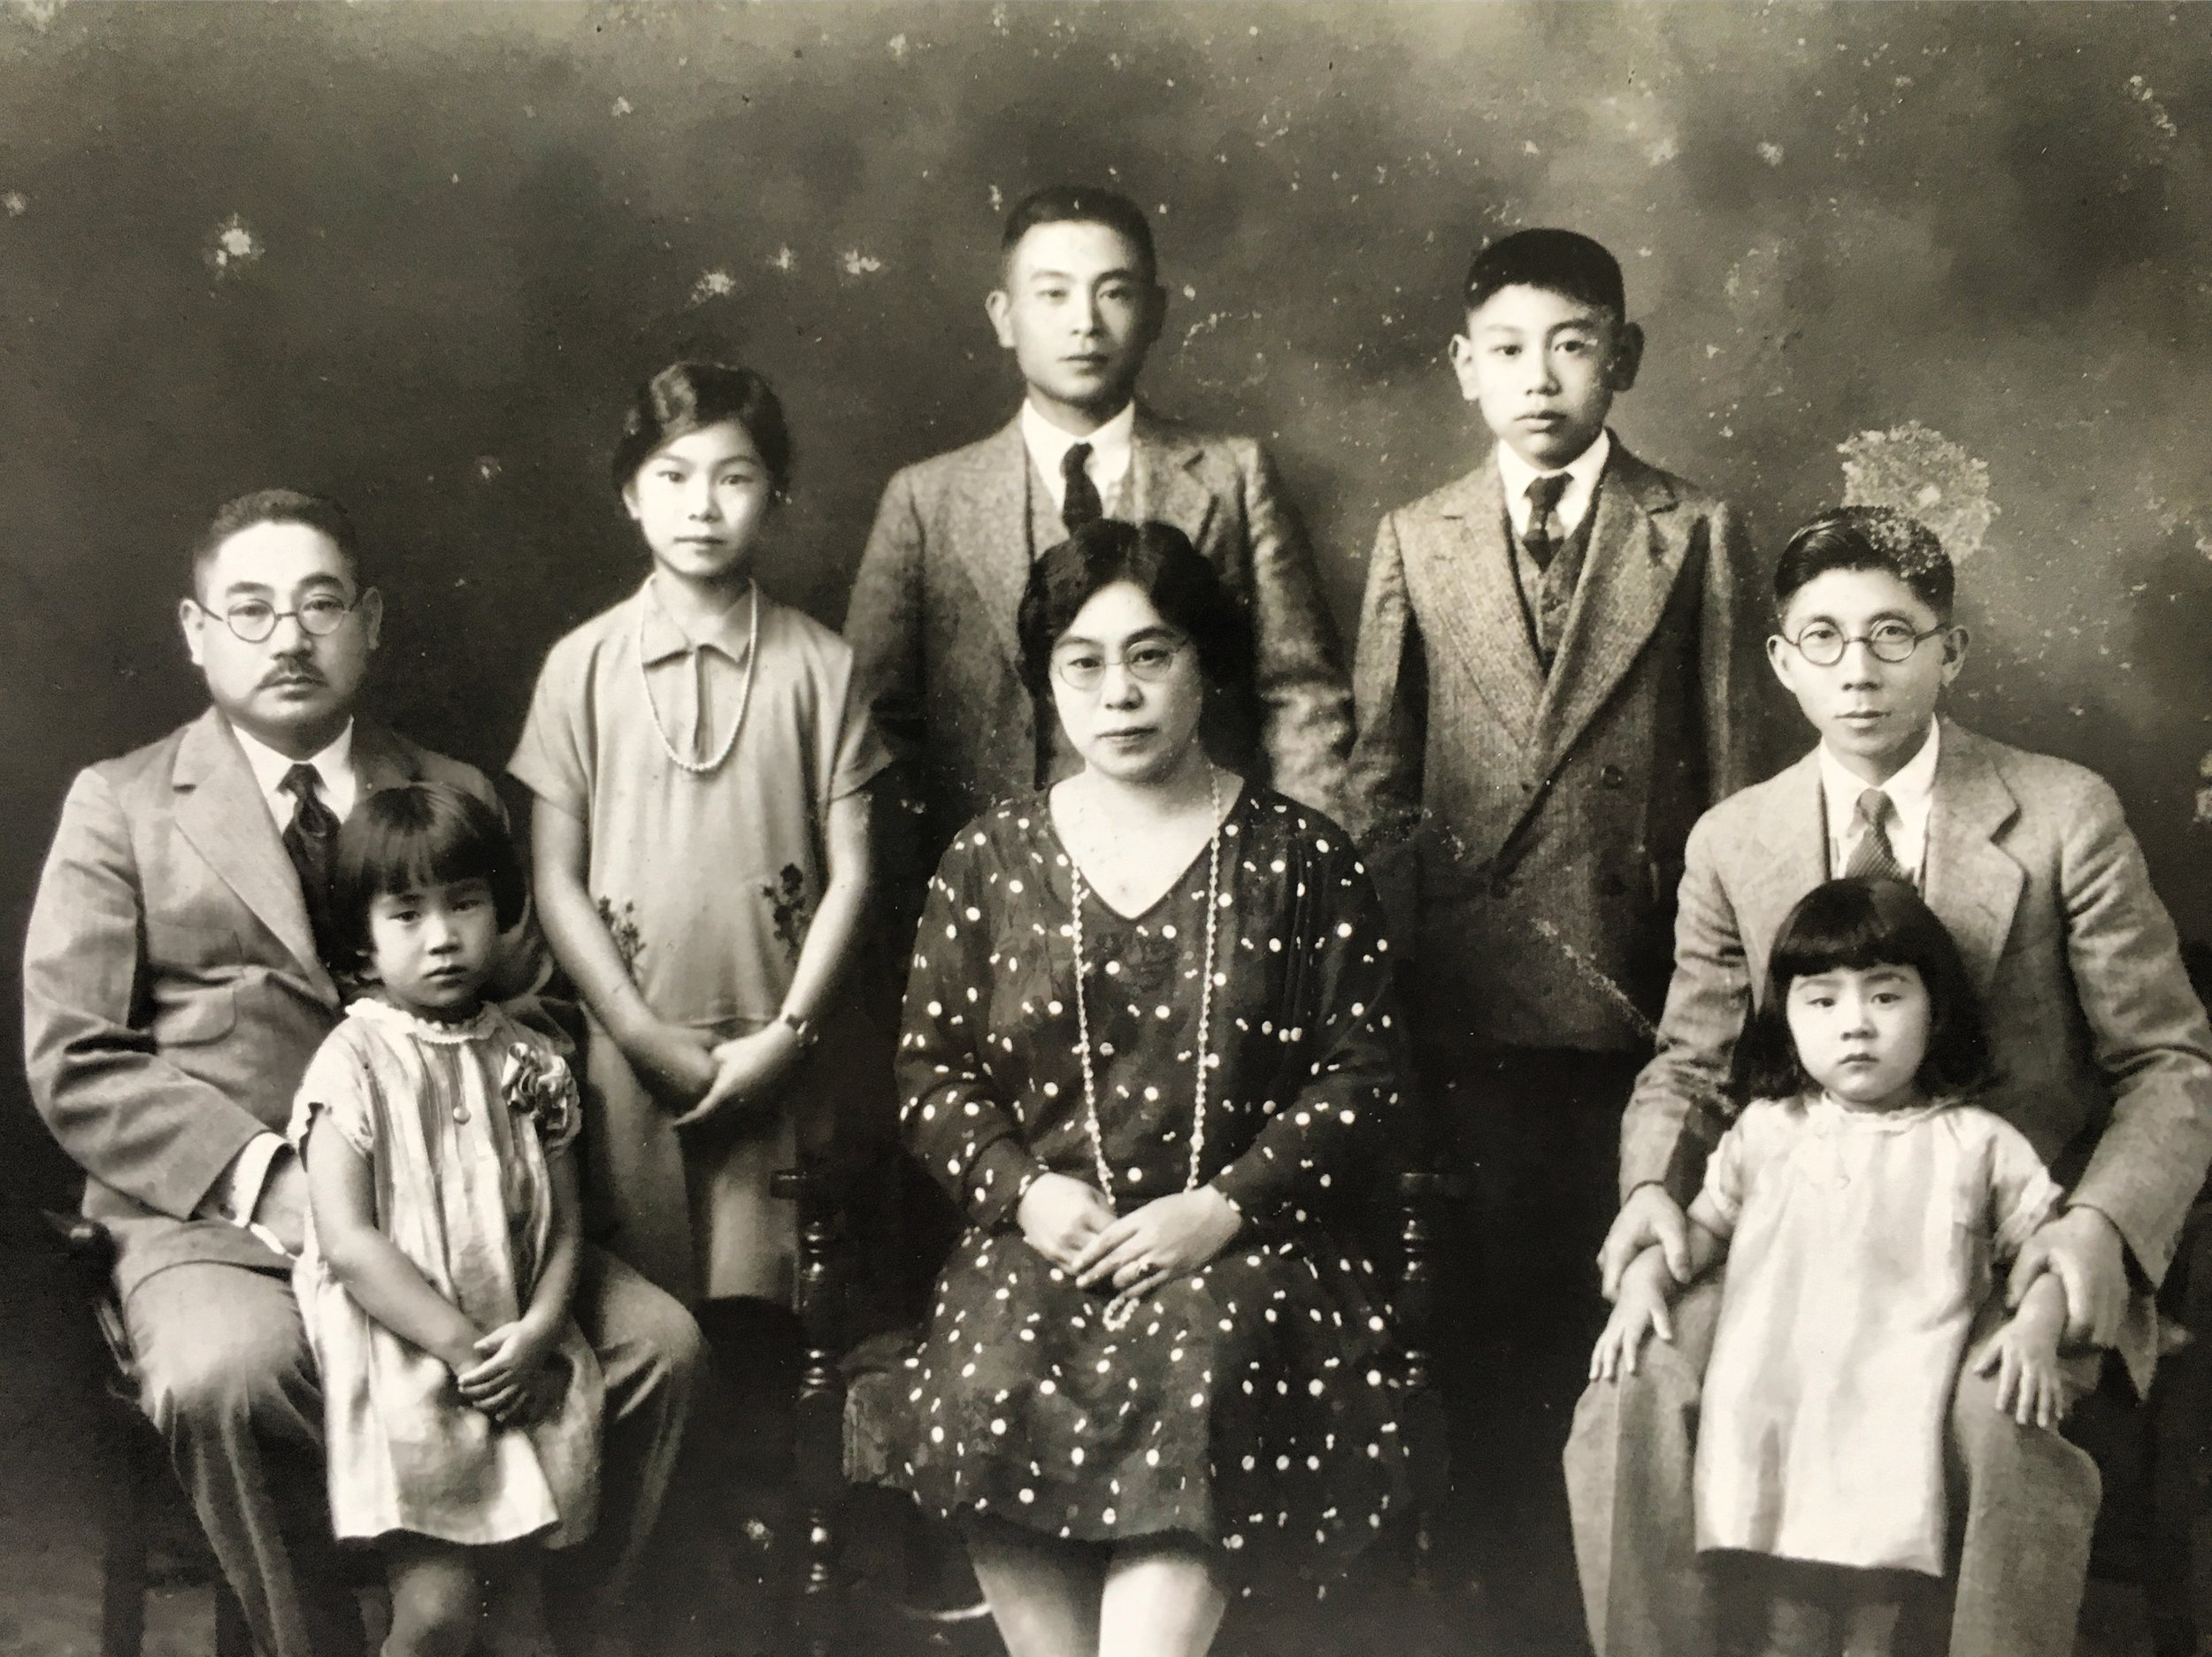 A Kageyama family portrait. Mary's father Tomitaro is on the far left, her mother Machi is center, and her future stepfather is on the far right.